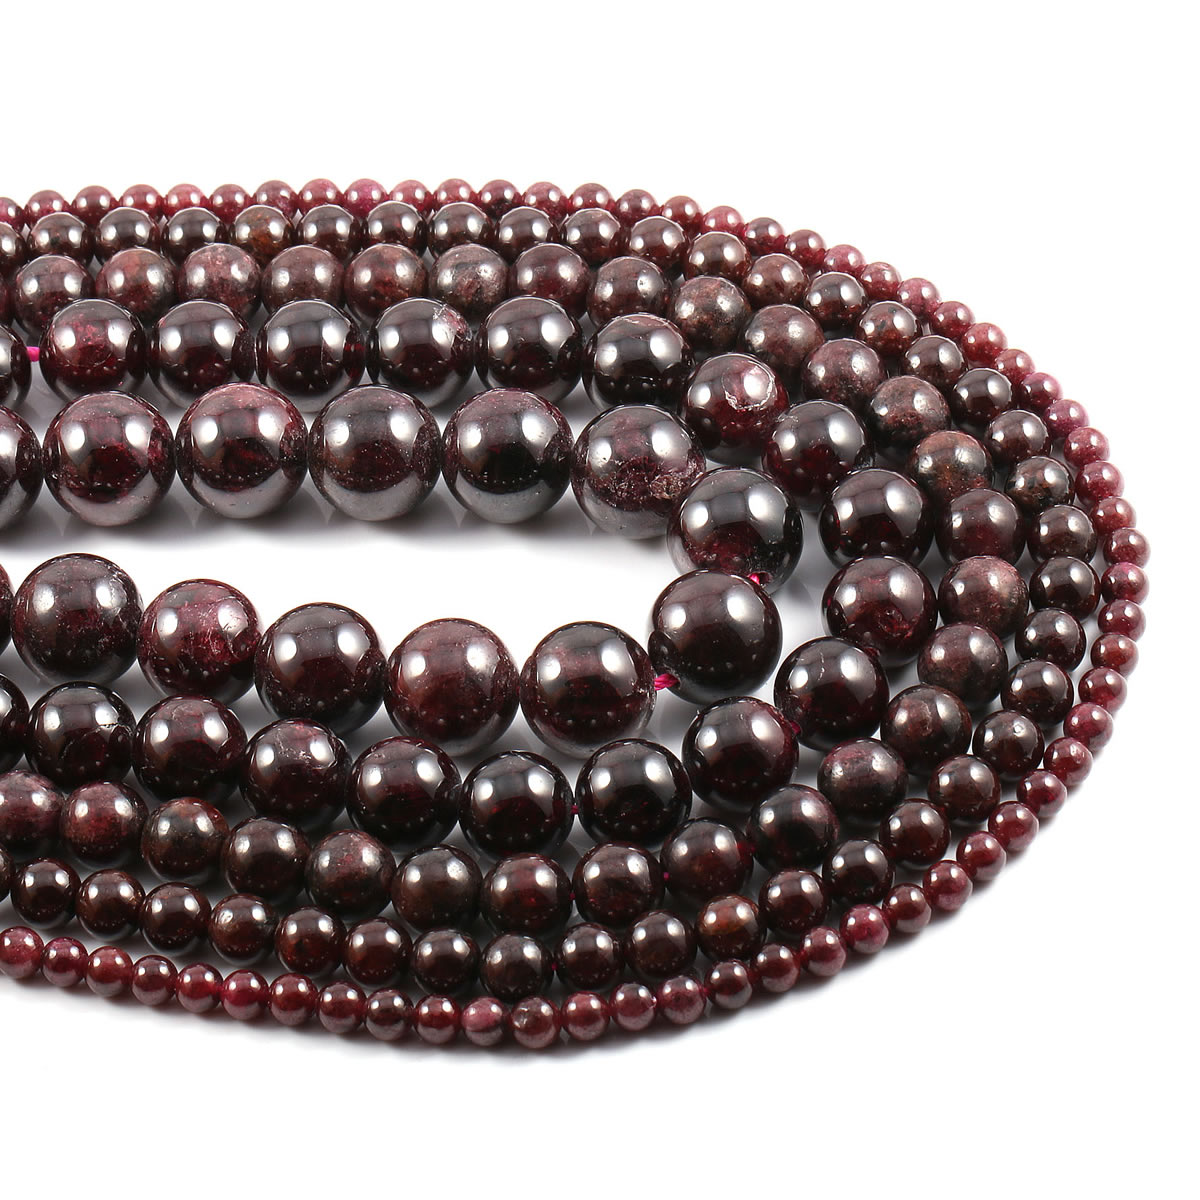 Natural Stone Dark Red Garnet Beads Round Loose Beads For Jewelry Making DIY Bracelet Necklace Accessories Strand 15''  - buy with discount